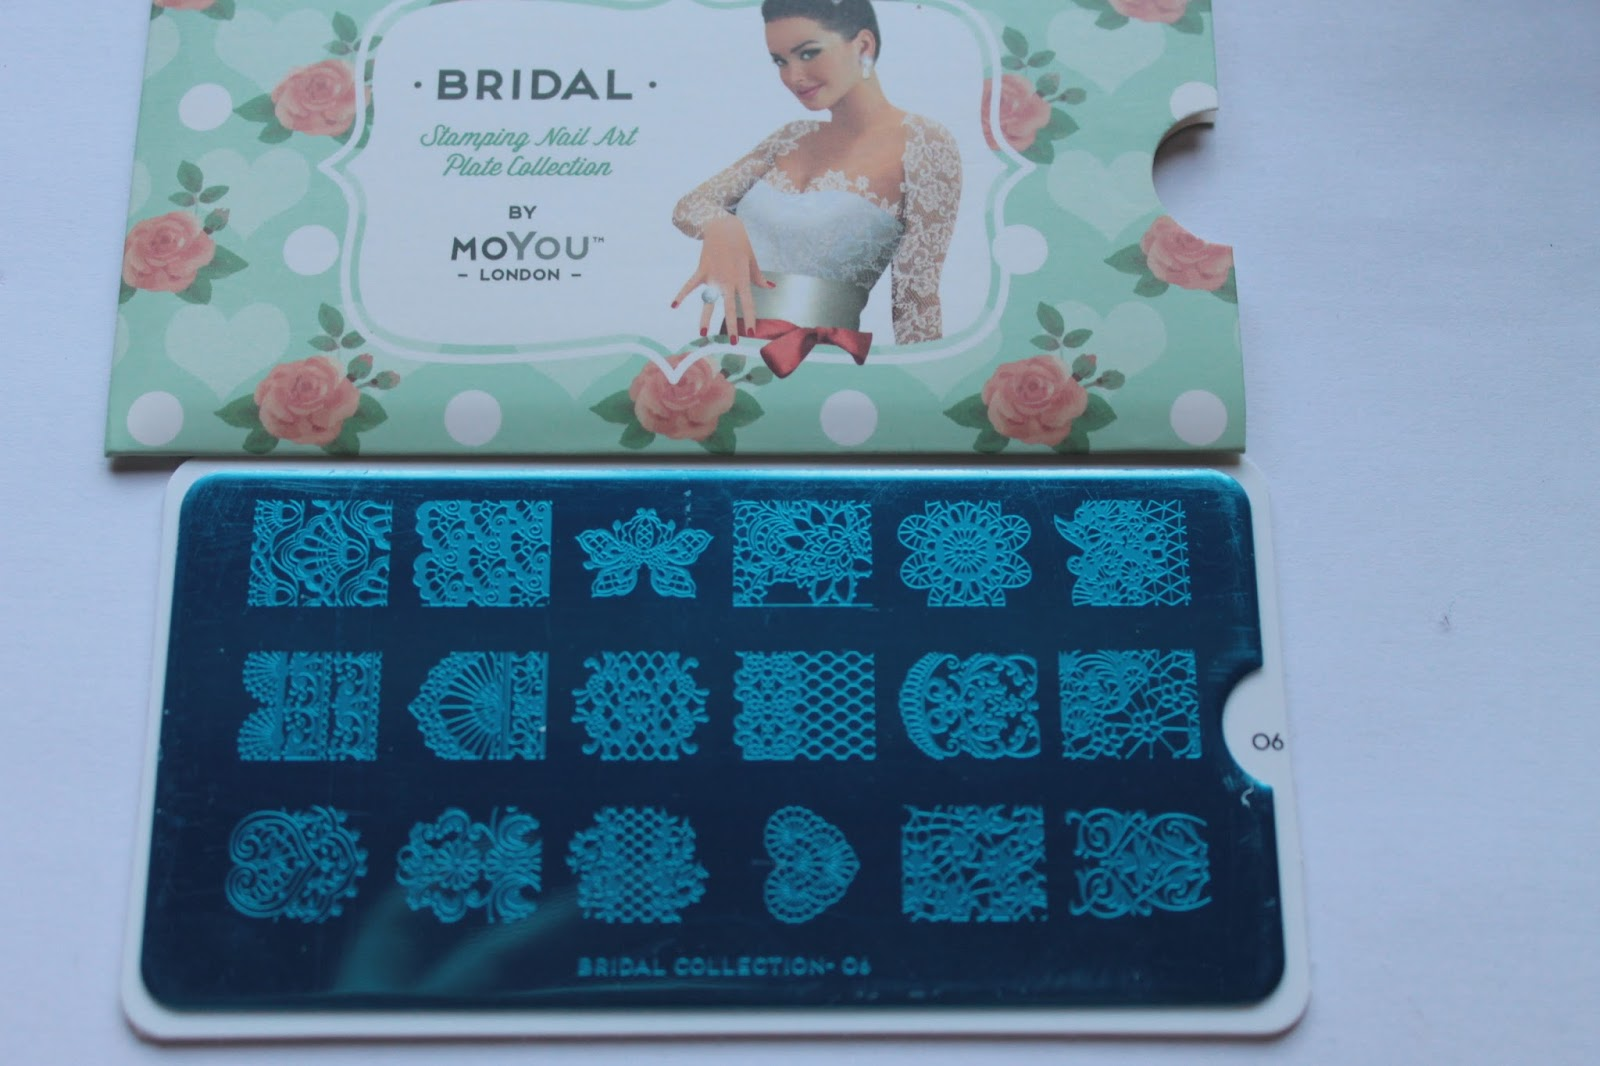 moyou-image-plate-lace